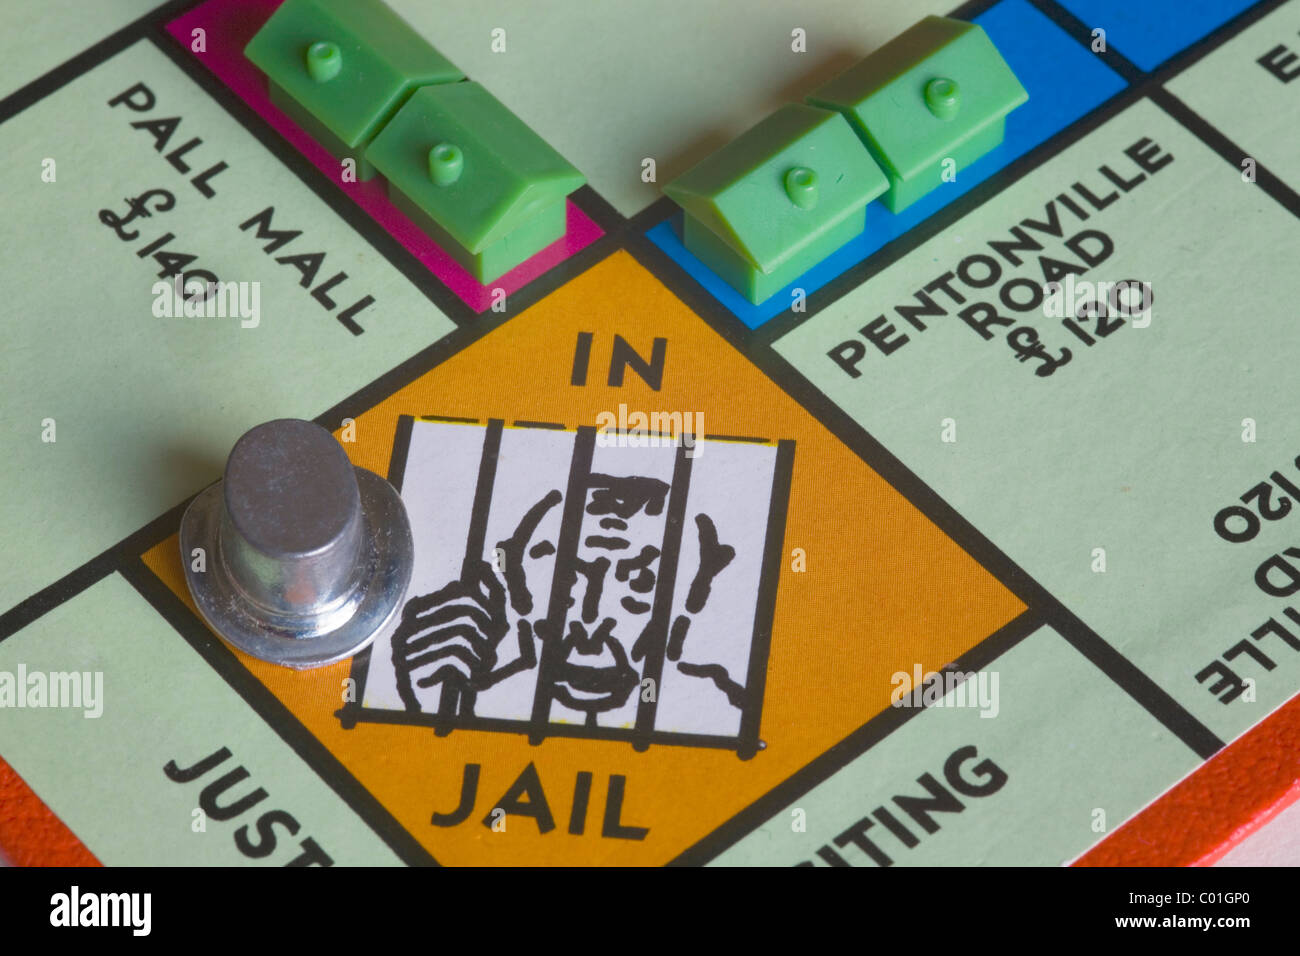 monopoly board game in Jail - Stock Image